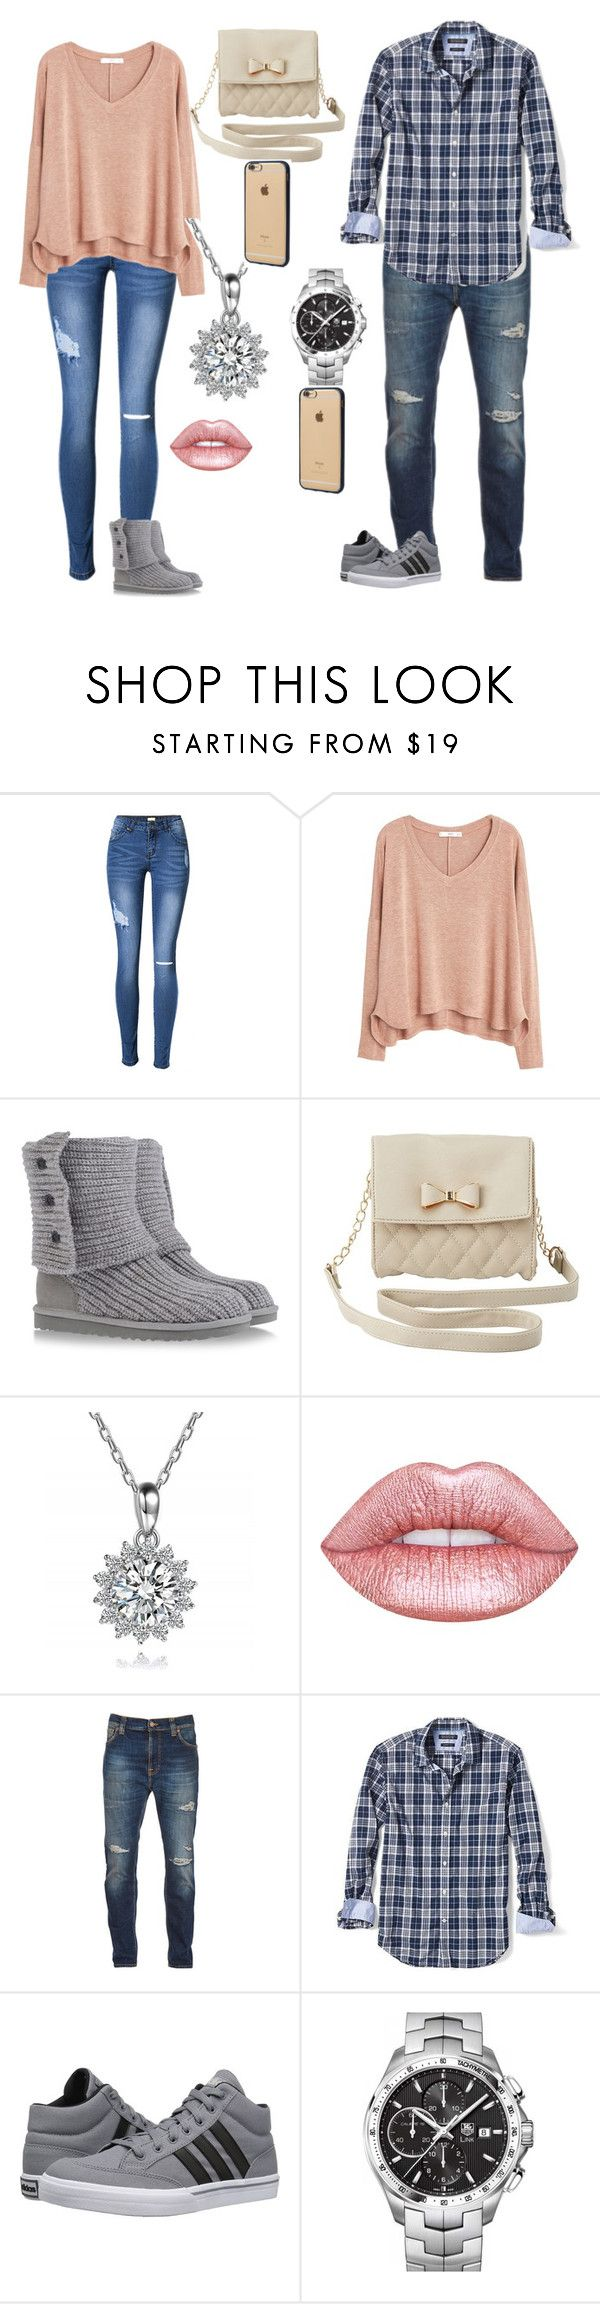 """""""first date"""" by jodiegarner ❤ liked on Polyvore featuring MANGO, UGG Australia, Charlotte Russe, Lime Crime, Nudie Jeans Co., Banana Republic, adidas, TAG Heuer and Incase"""